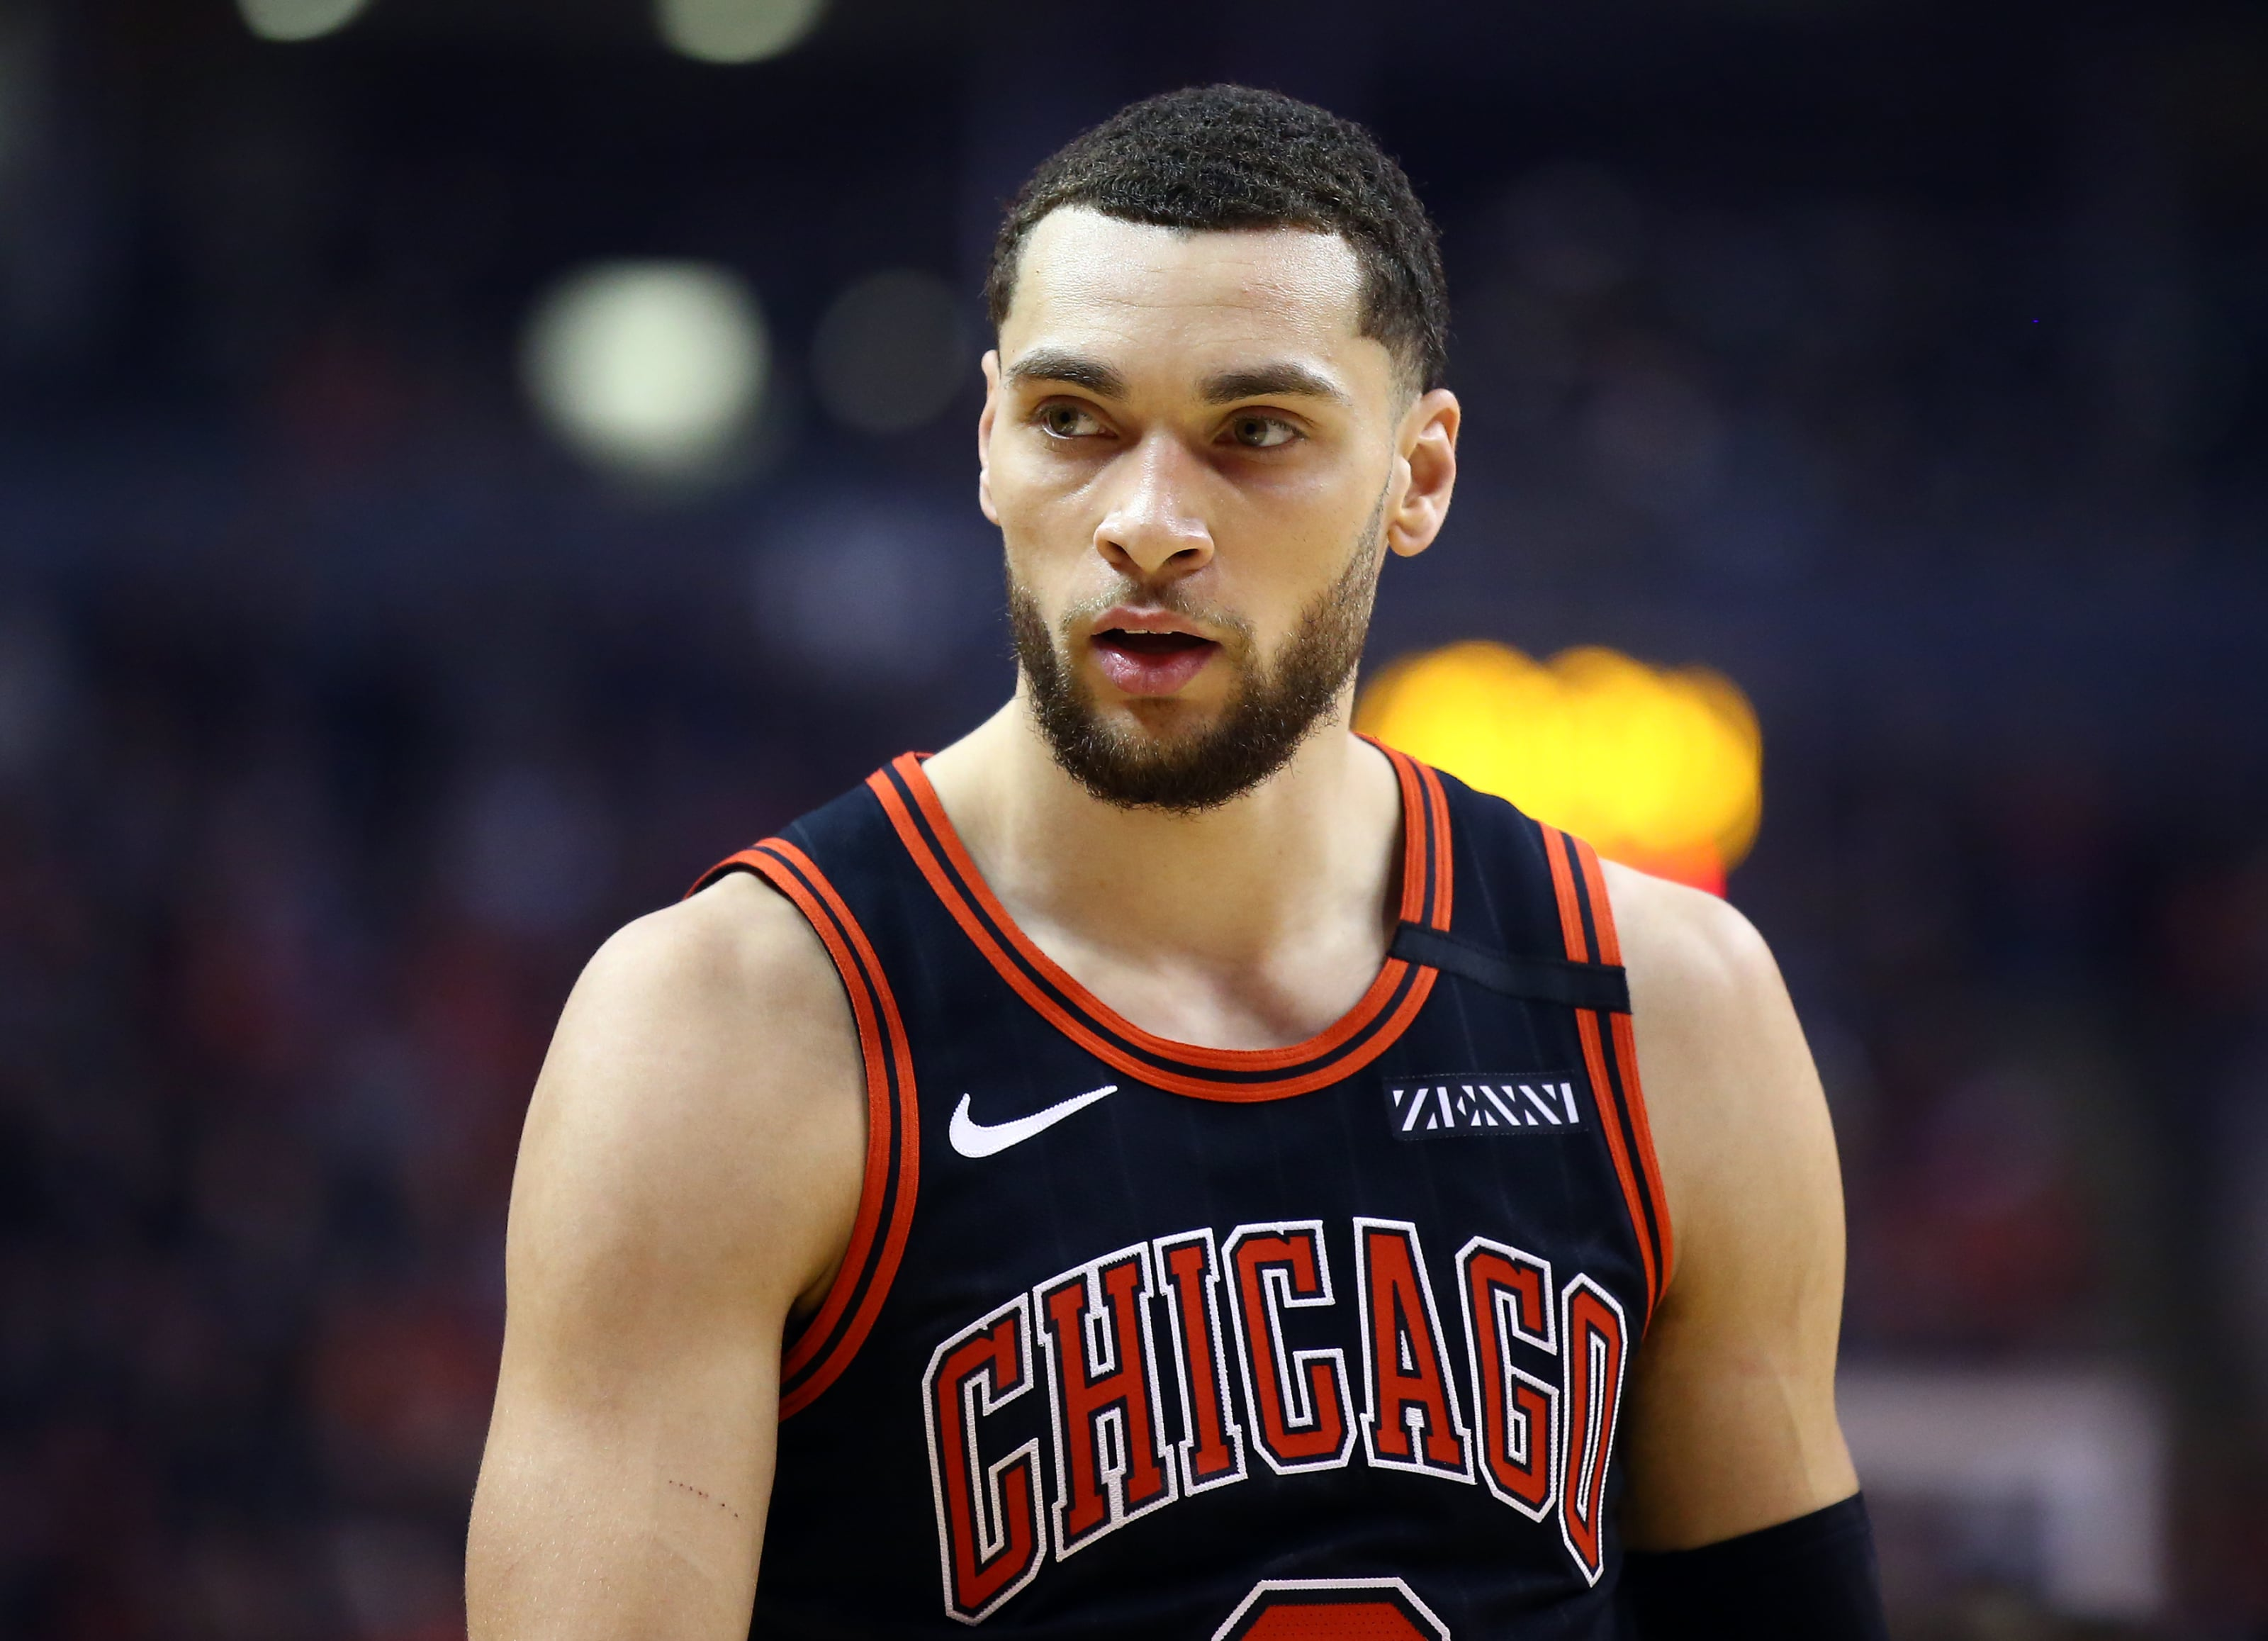 Zach LaVine All-Star Voting